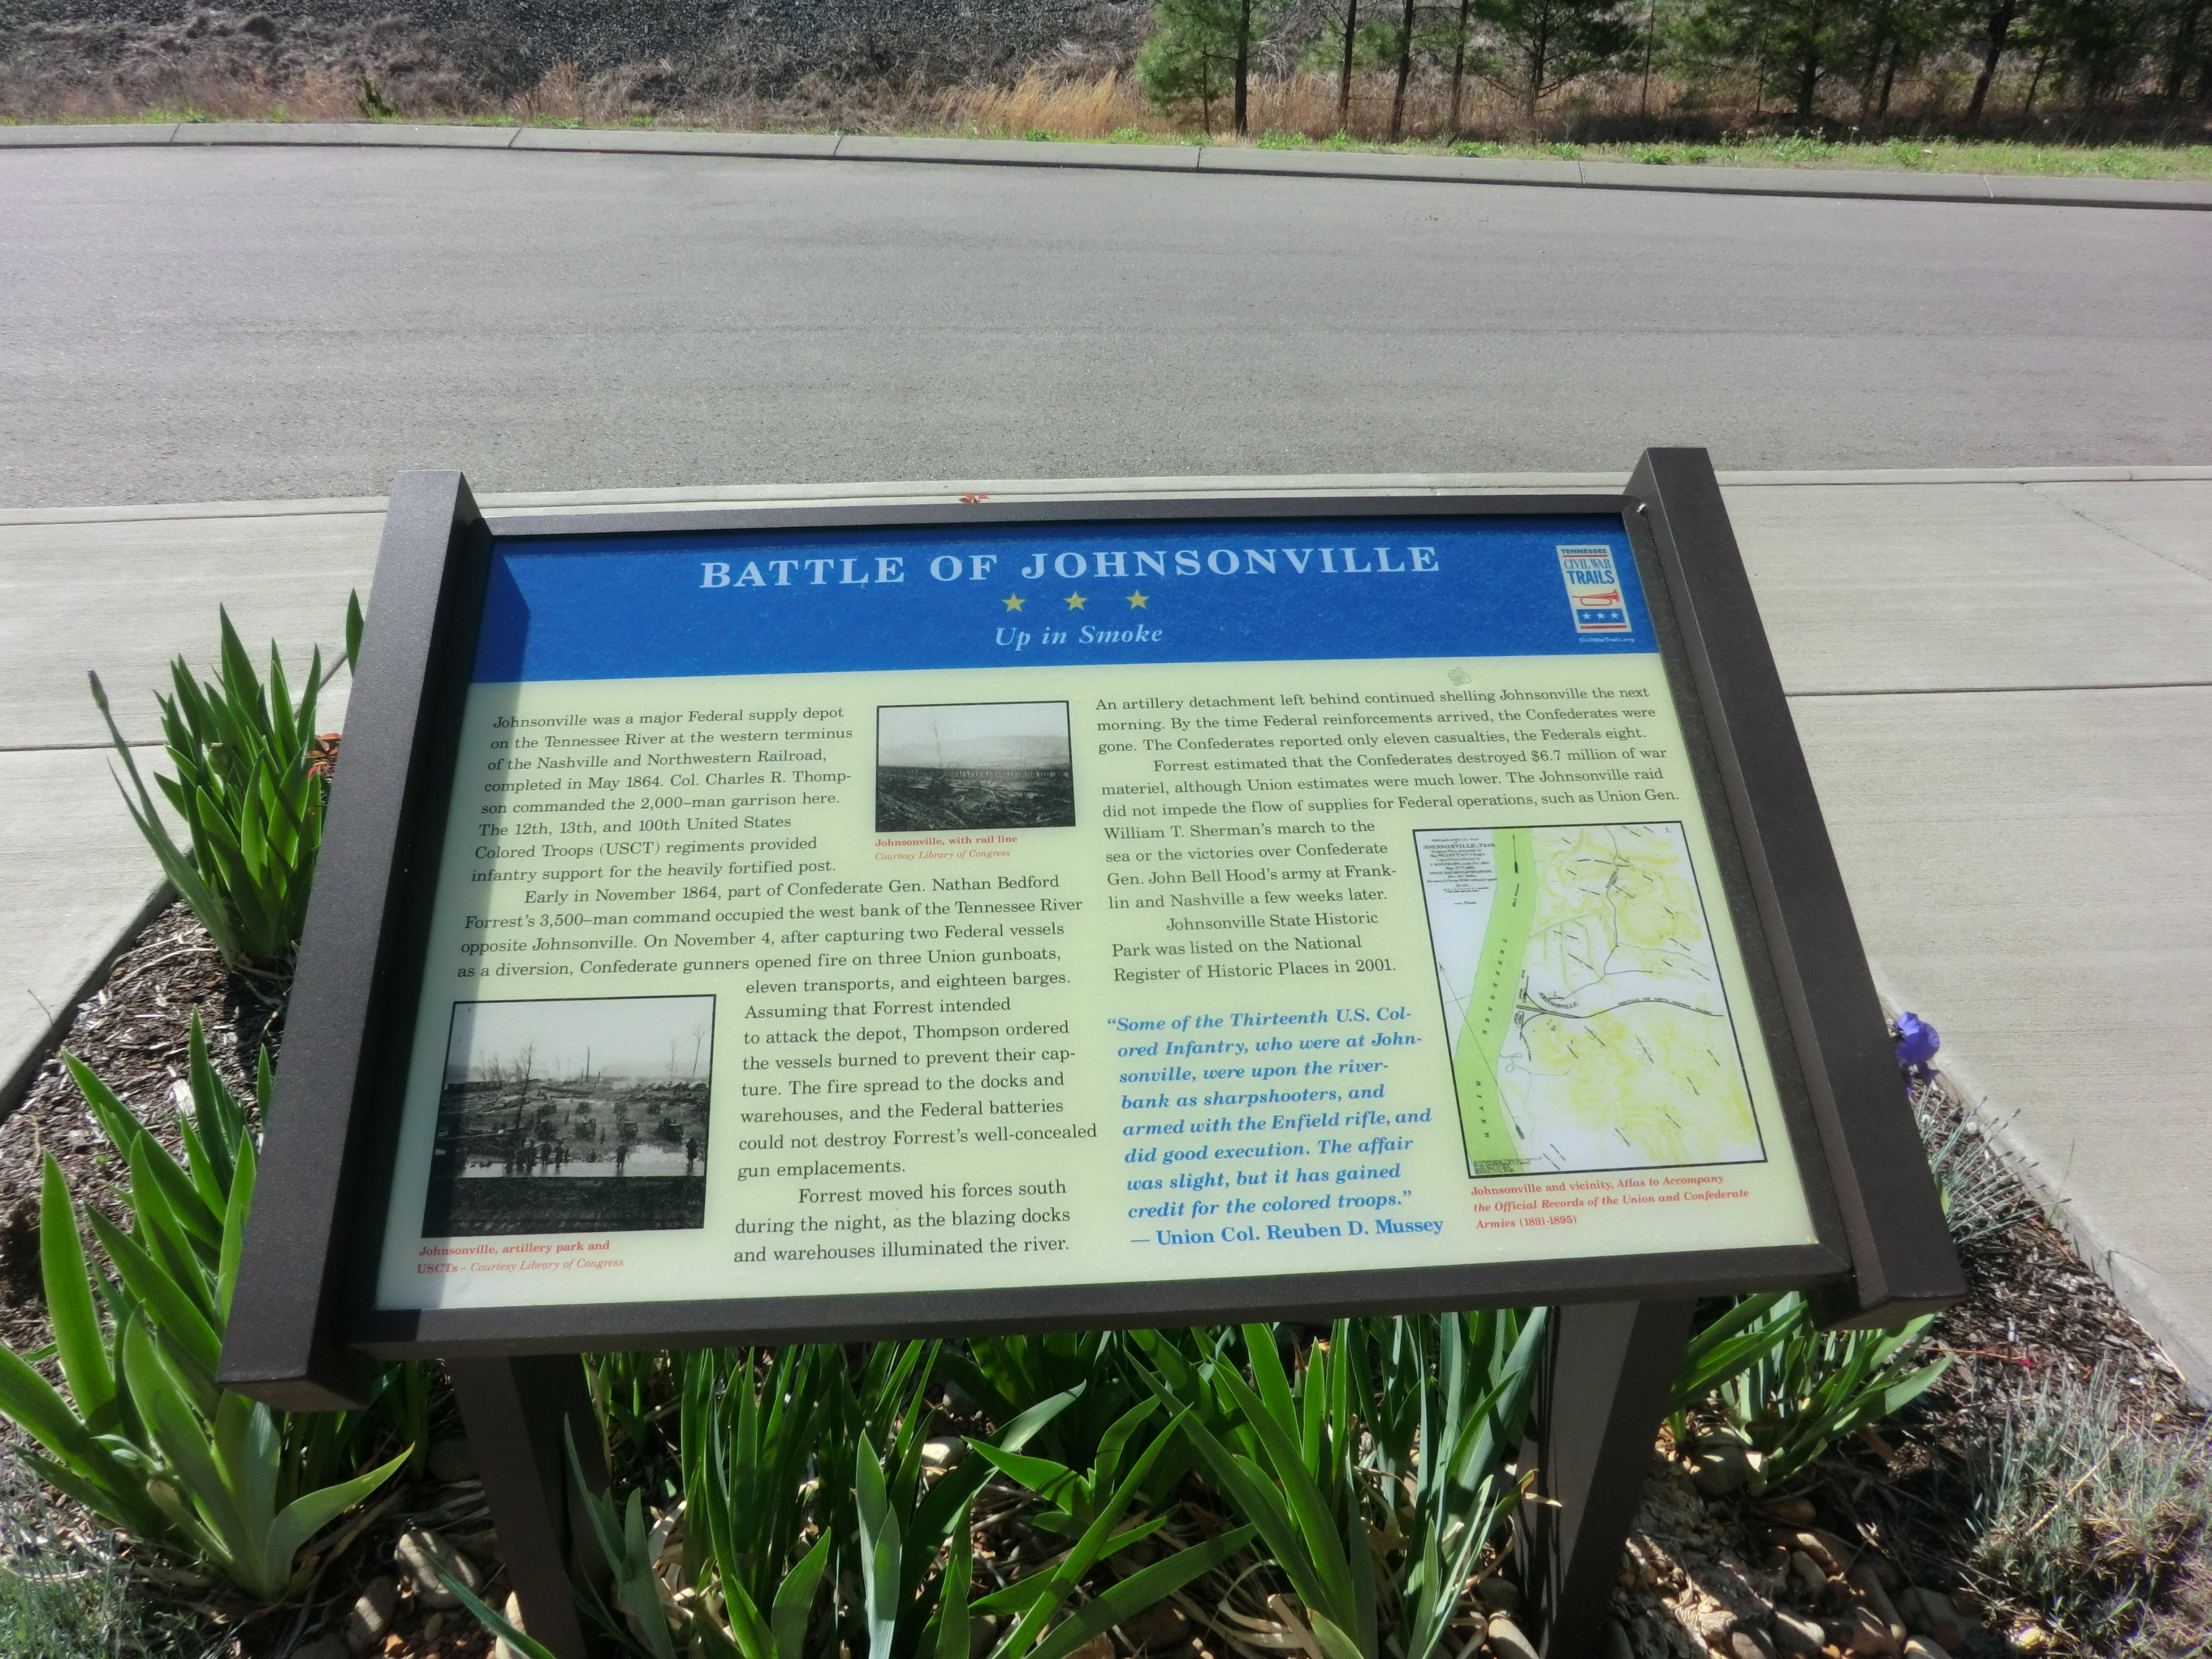 Battle of Johnsonville Marker